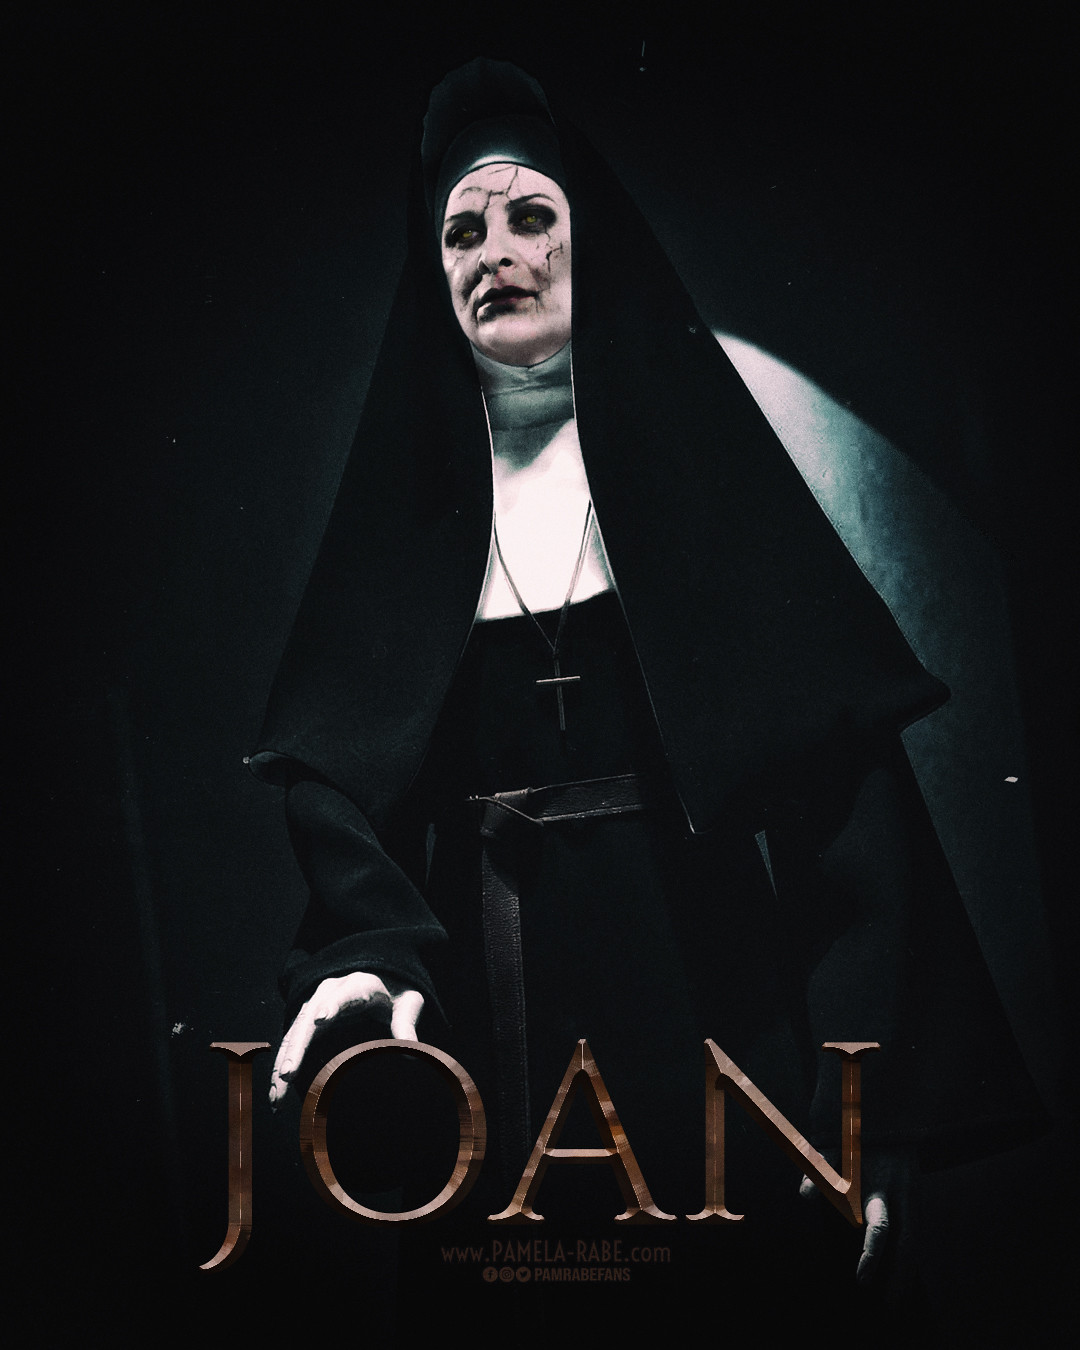 Pamela Rabe | Joan Ferguson as The Nun/Valak | Happy Halloween 2019